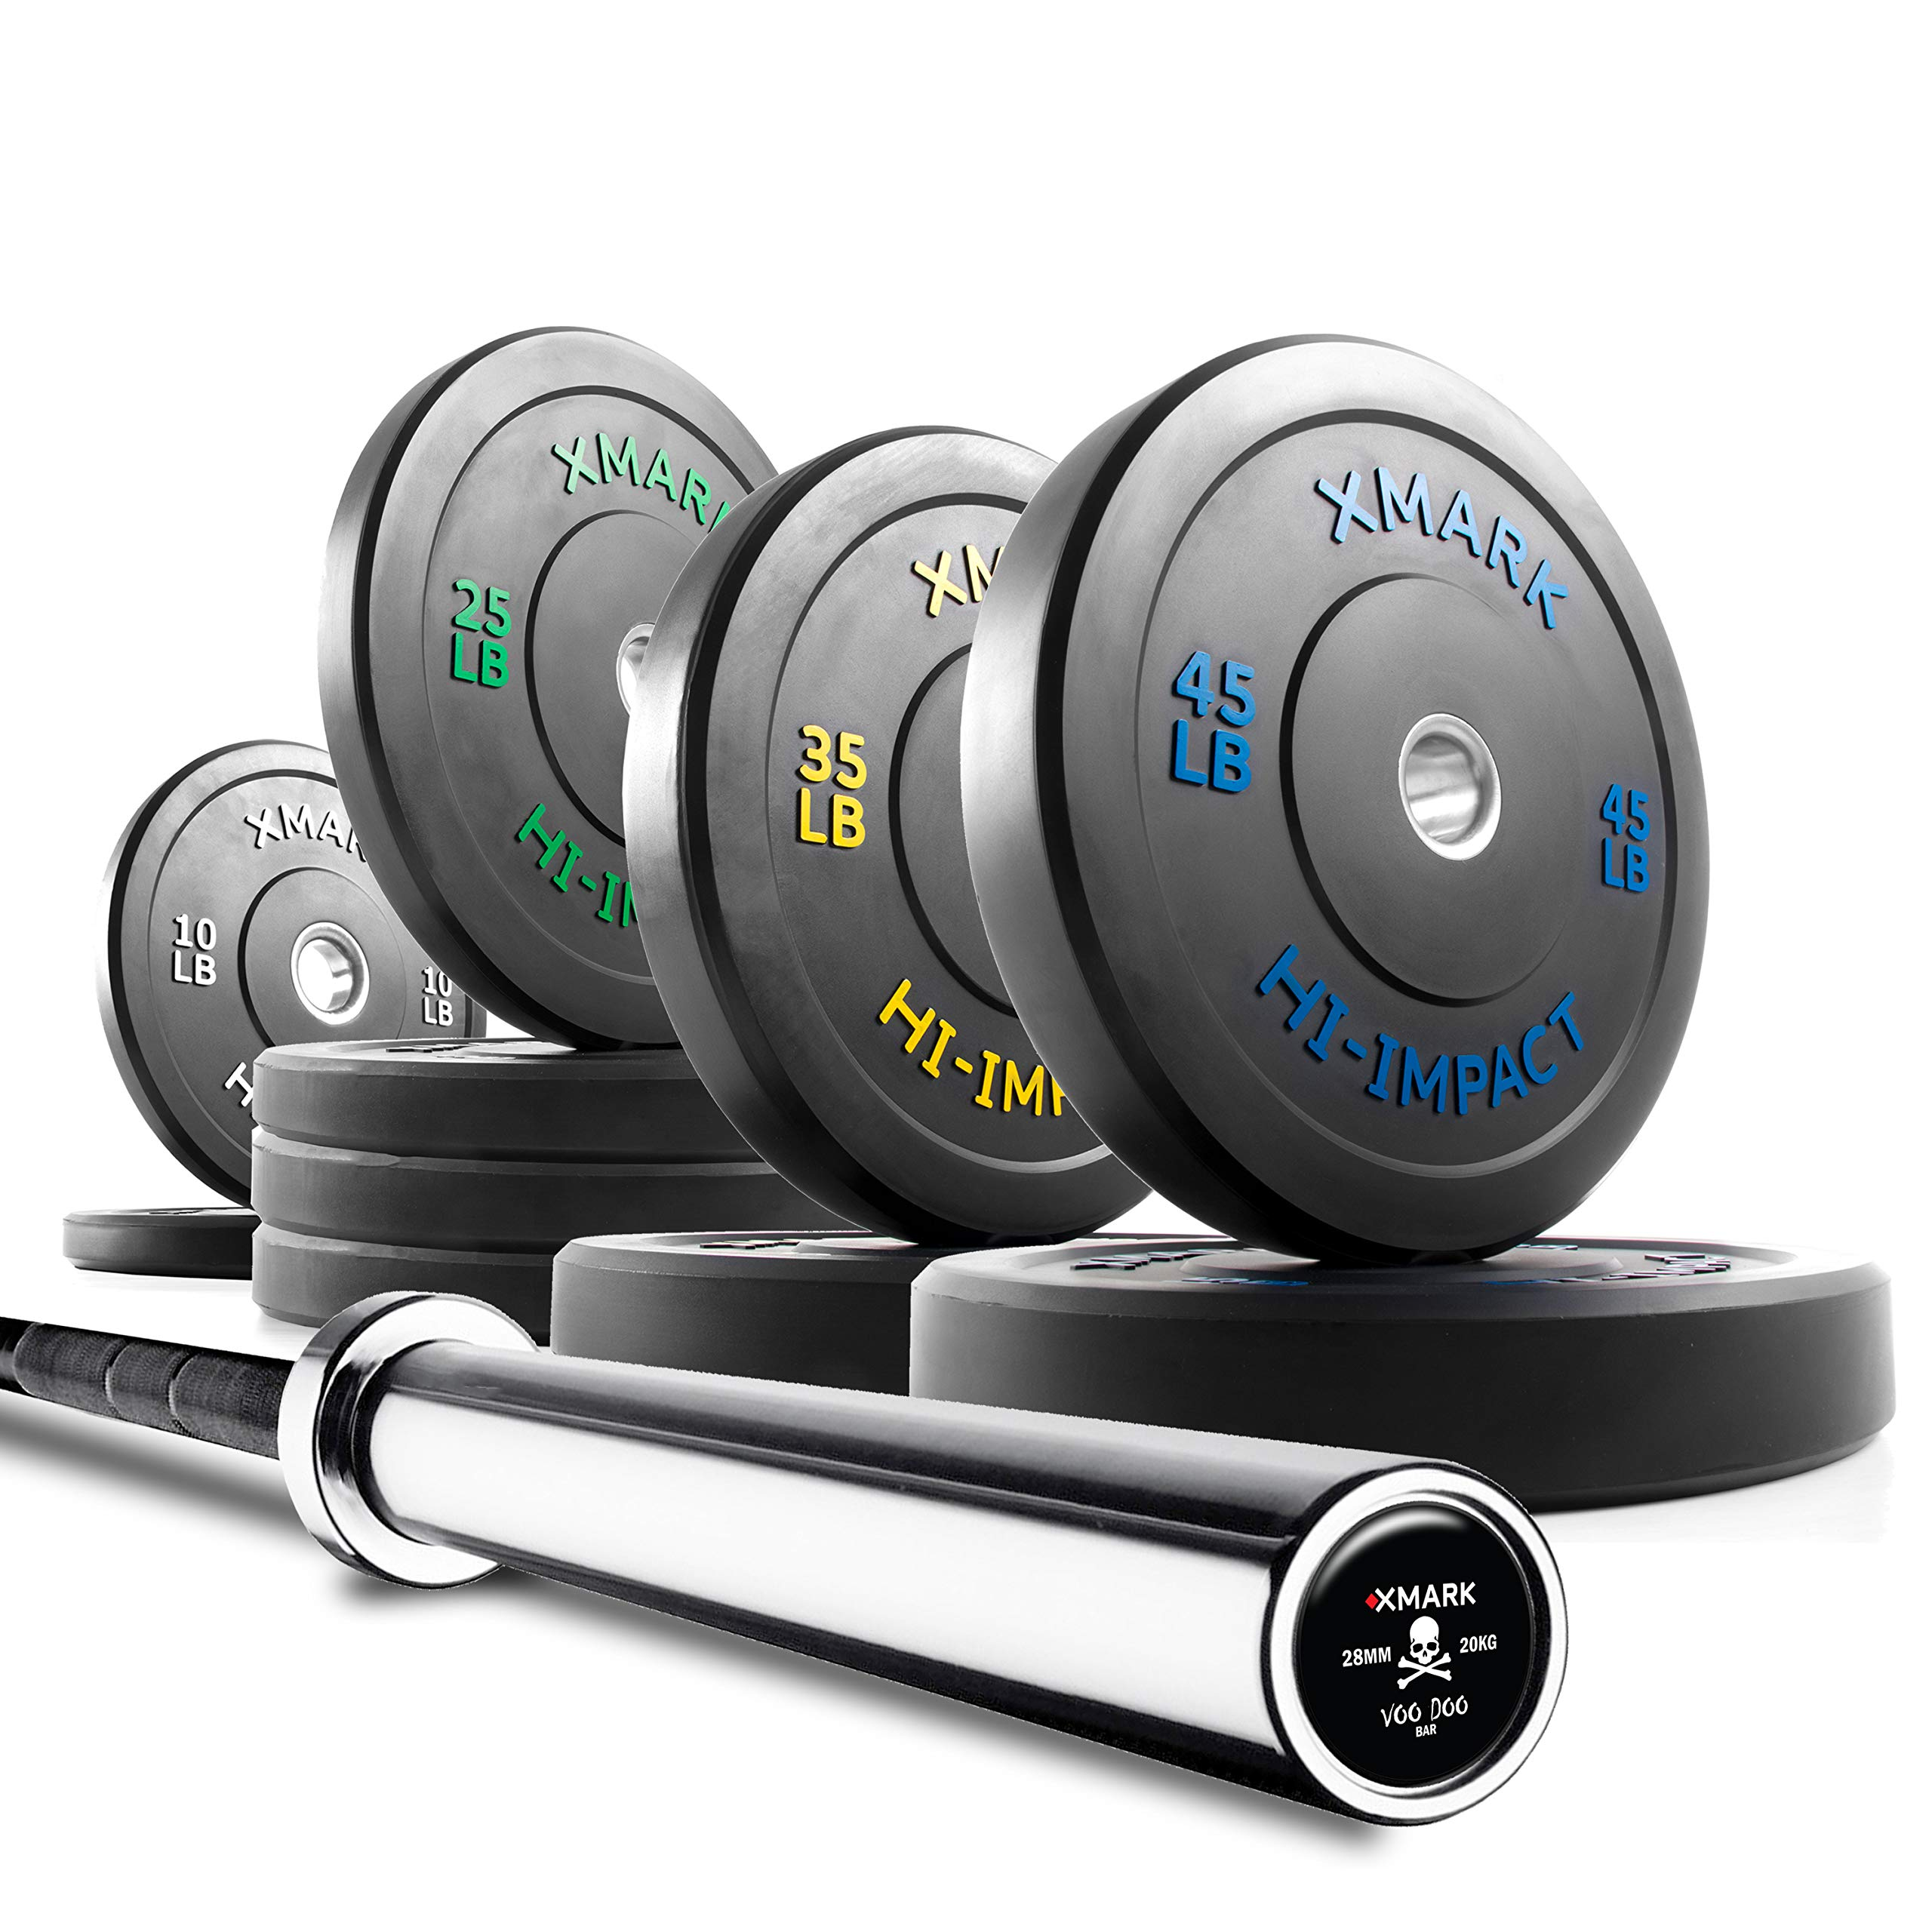 XMark Voodoo Commercial 7' Olympic Bar Plus 280 lbs. of XMark HI-Impact Low Bounce Virgin Rubber Olympic Bumper Plates